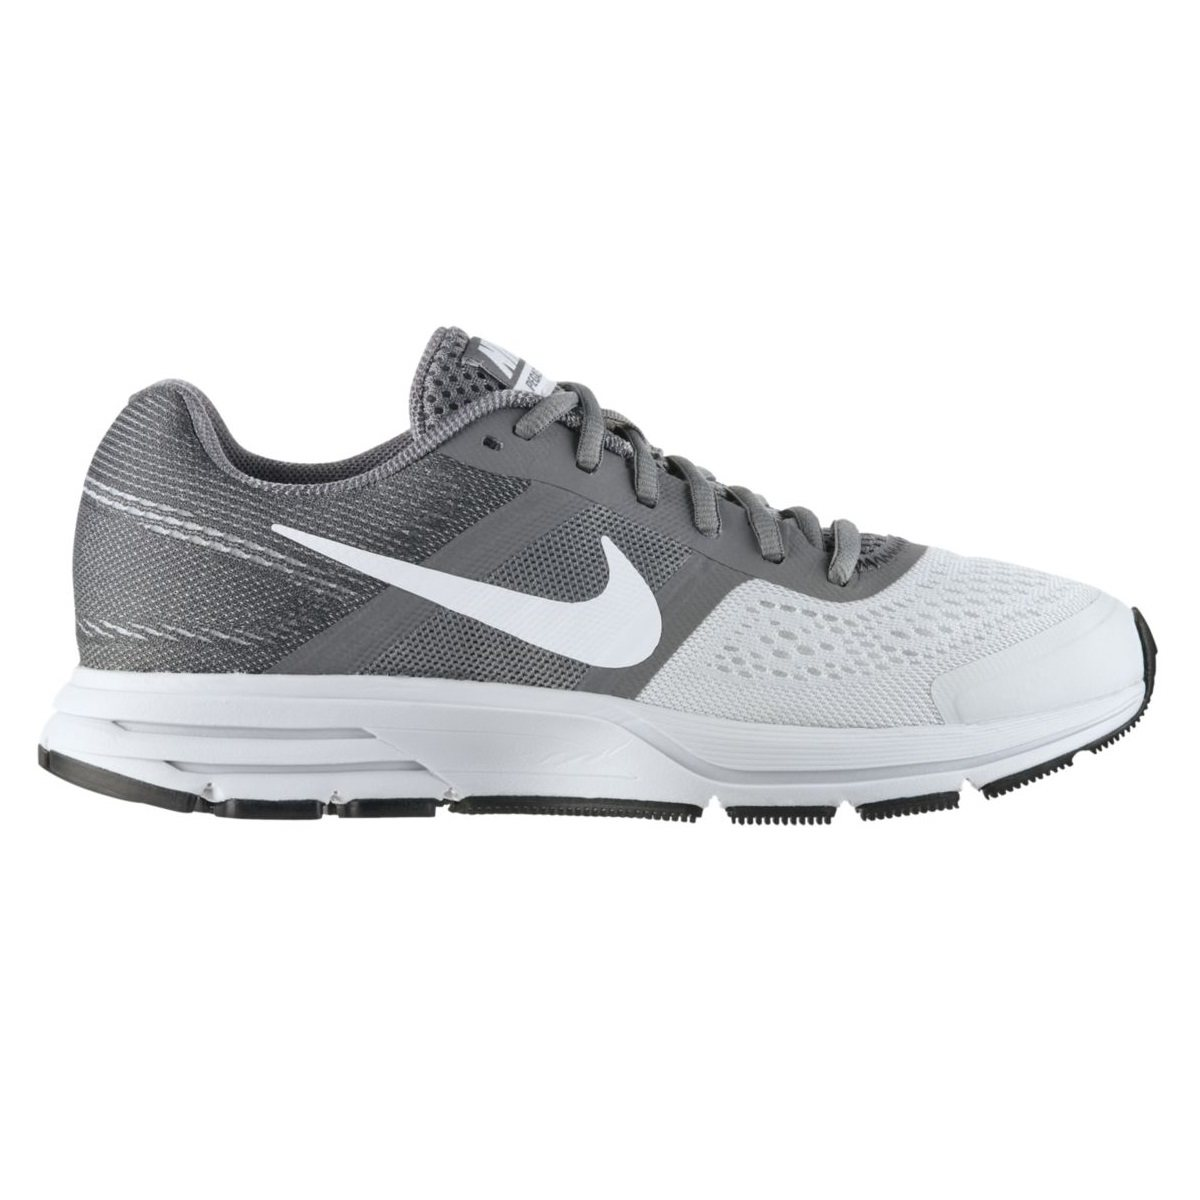 nike air pegasus 30 schuhe laufschuhe sportschuhe. Black Bedroom Furniture Sets. Home Design Ideas